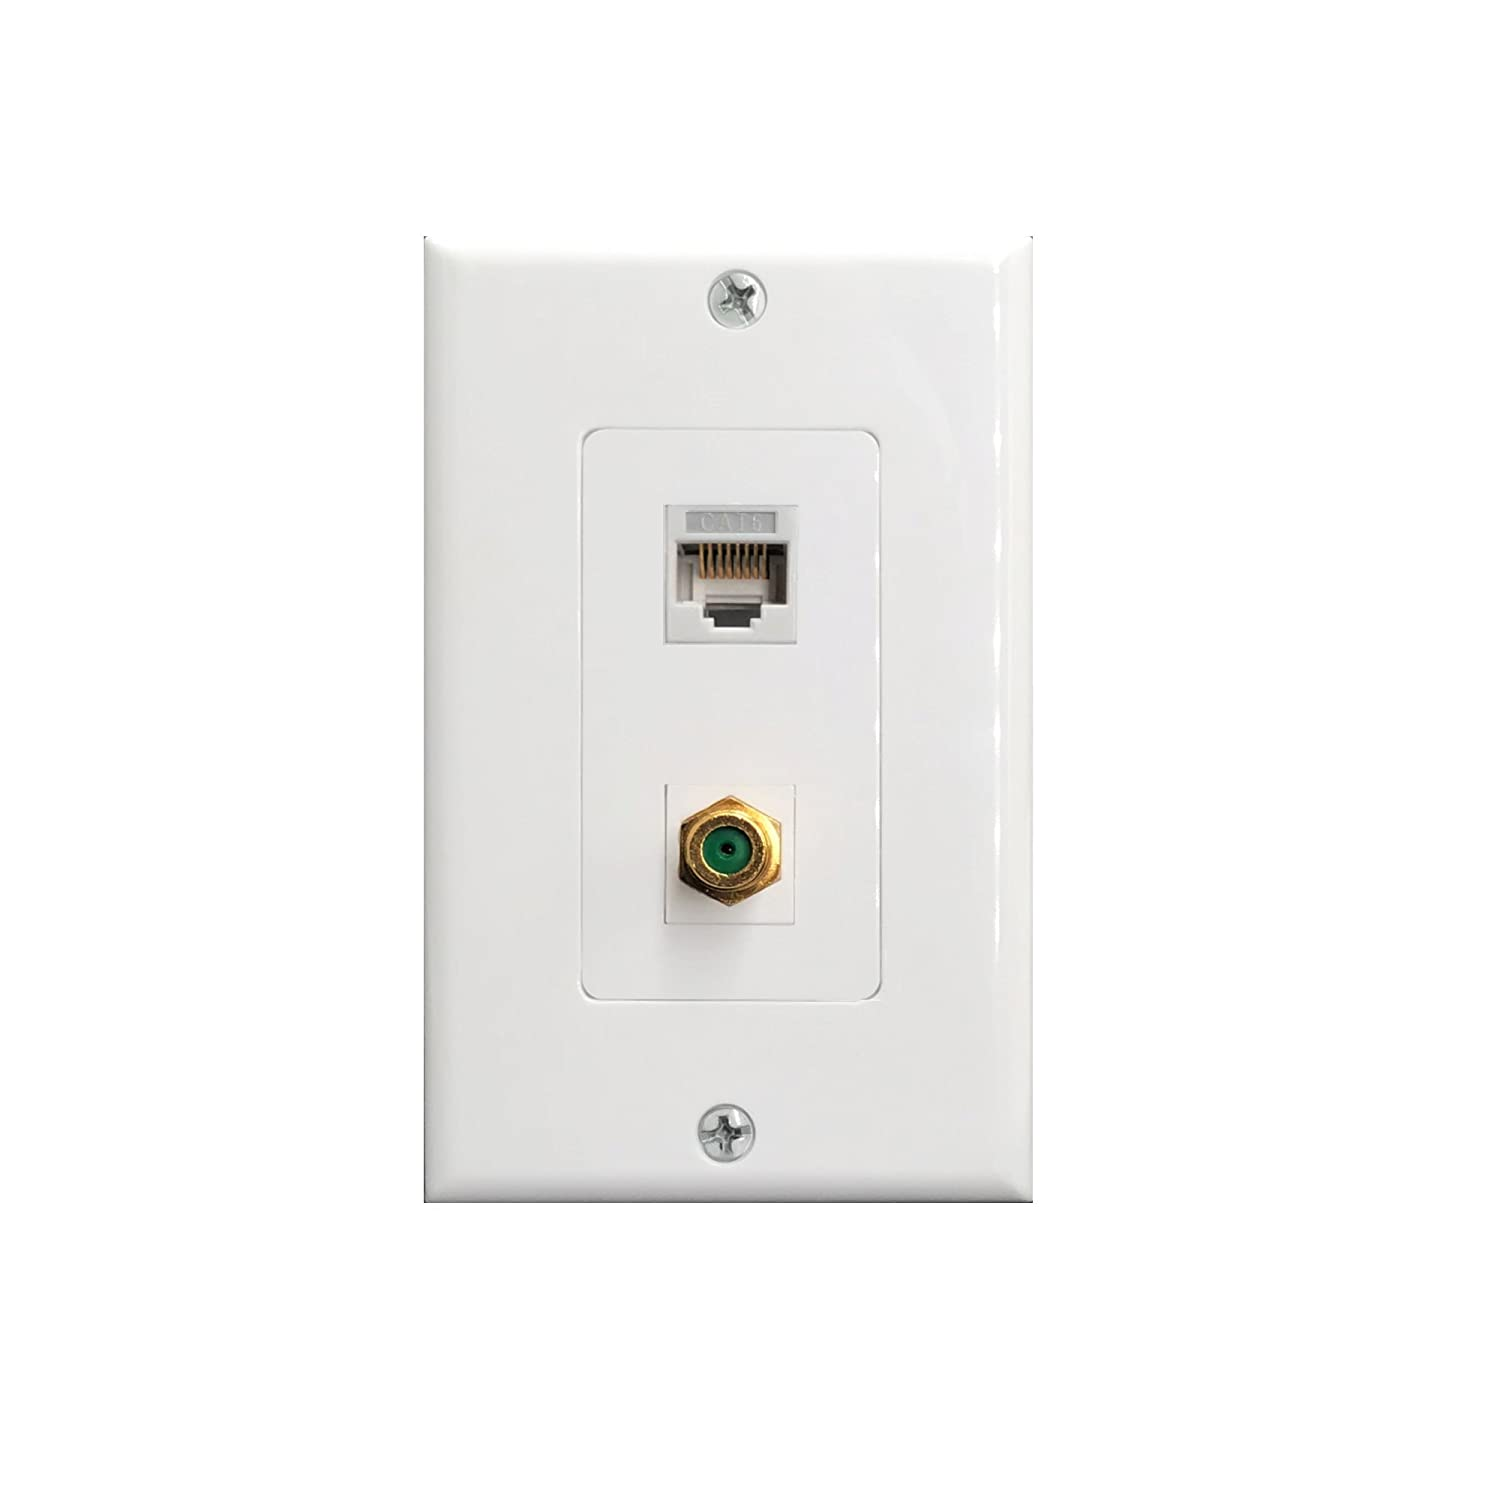 Rj45 Cat6 Ethernet Port And Gold Plated Brass Cable Tv Coax F Type Cat 6 Wiring Wall Plate